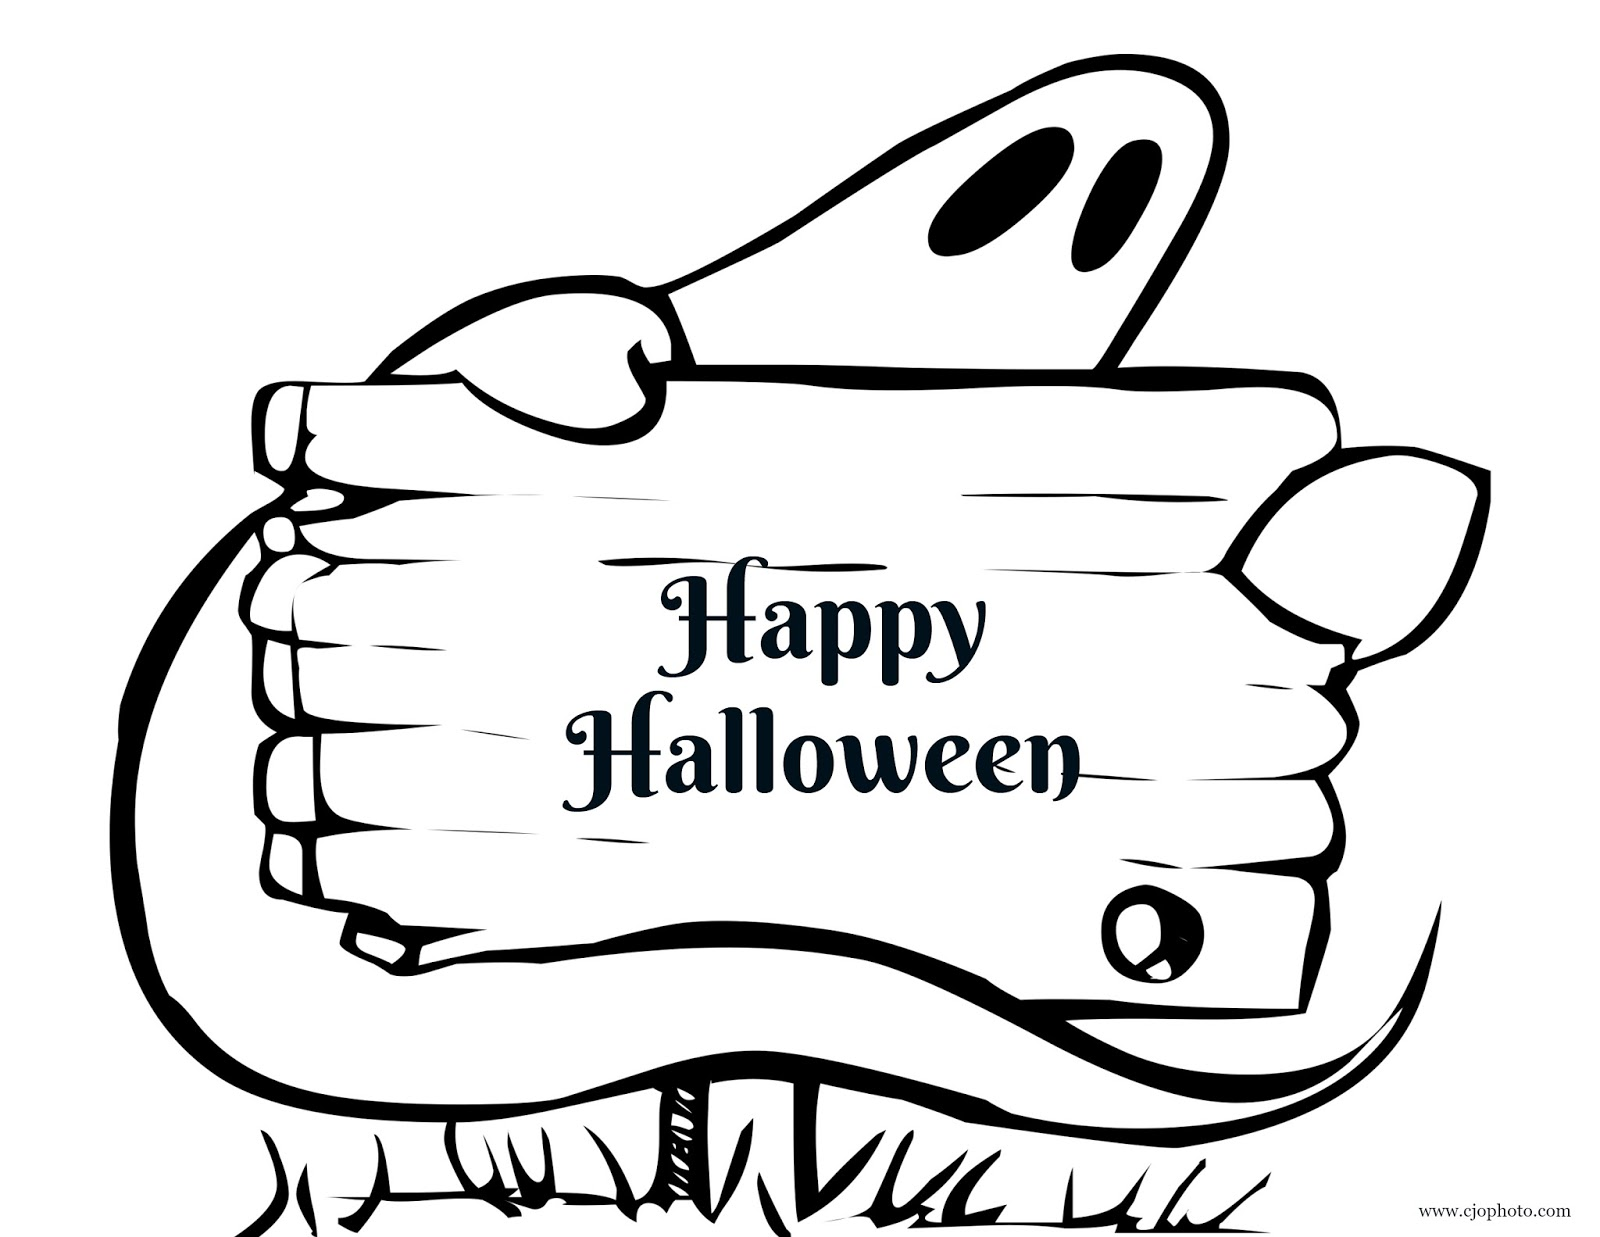 halloween coloring page happy halloween ghost - Ghost Coloring Page